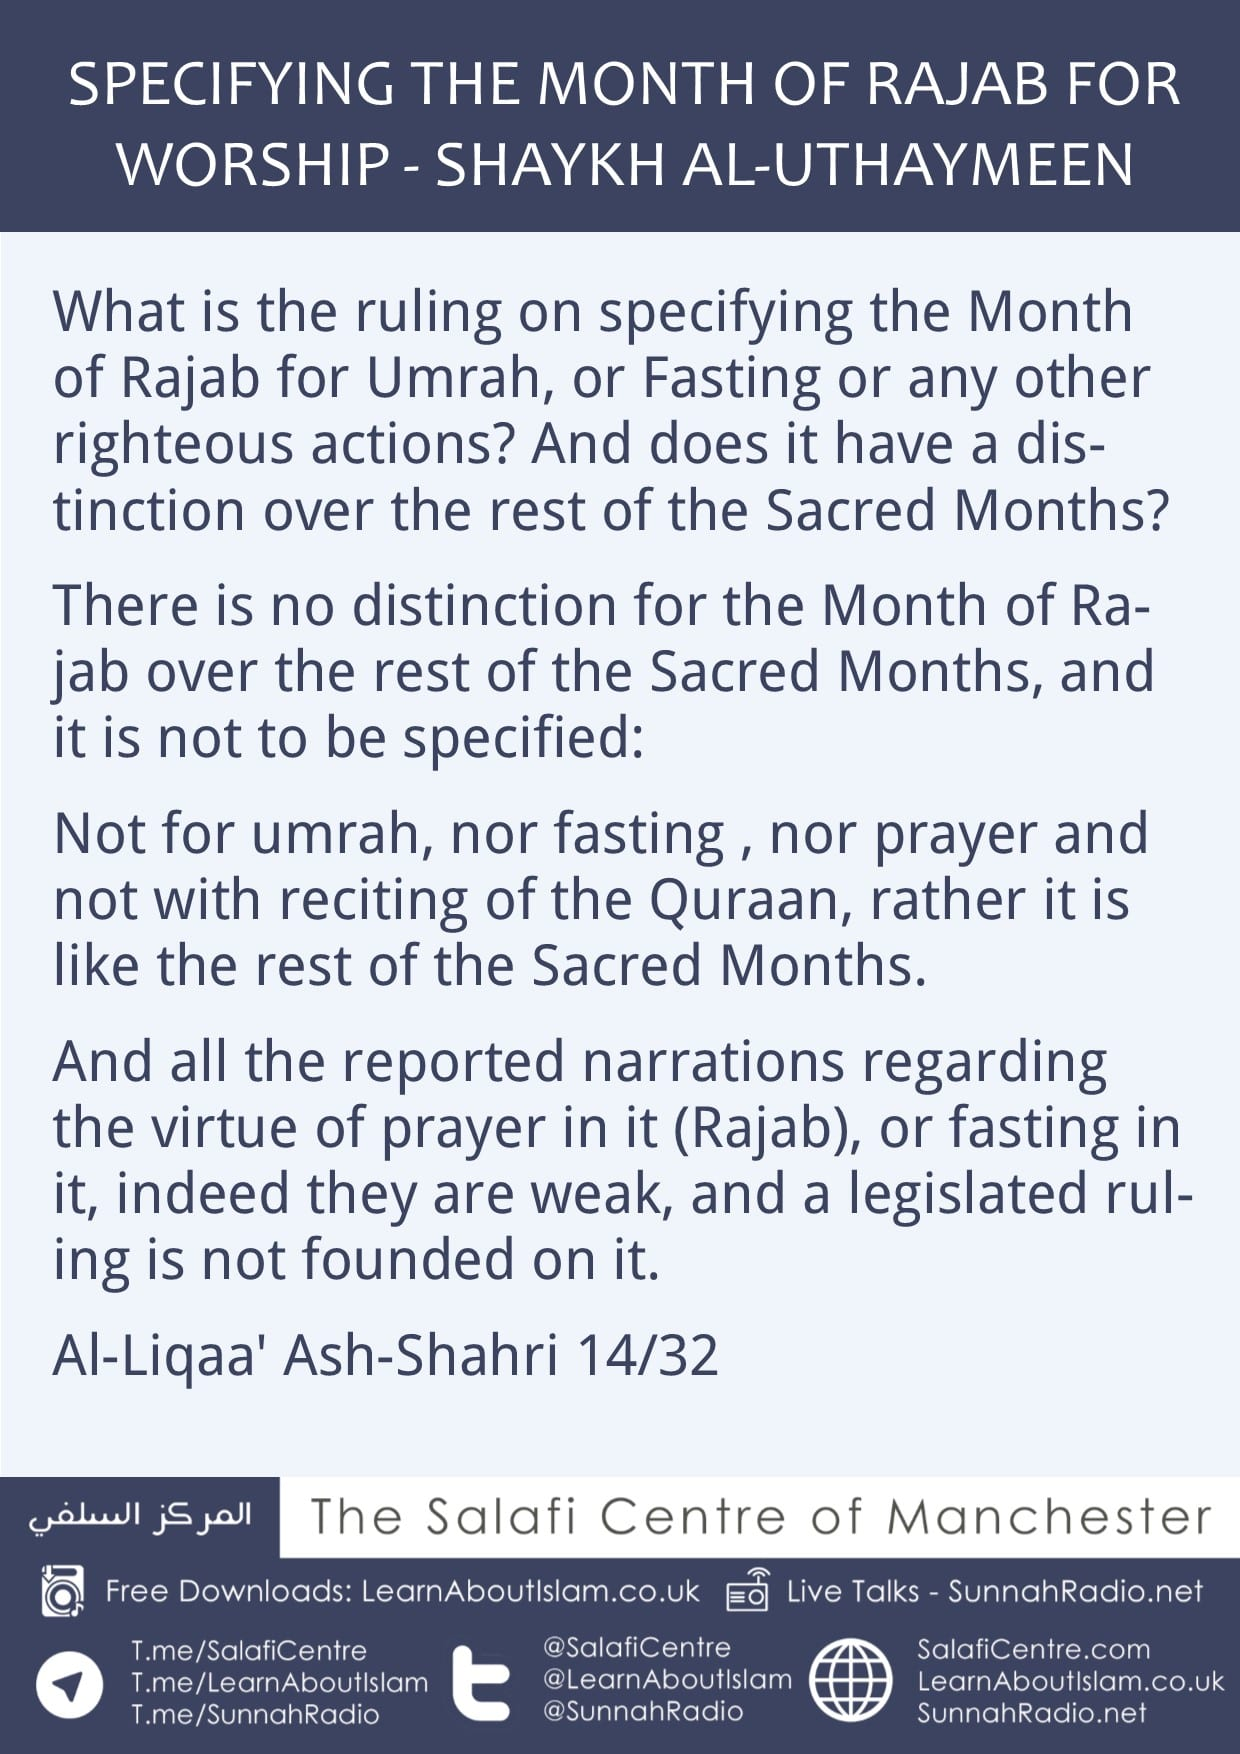 Specifying the Month of Rajab for Worship – Shaykh Al-Uthaymeen